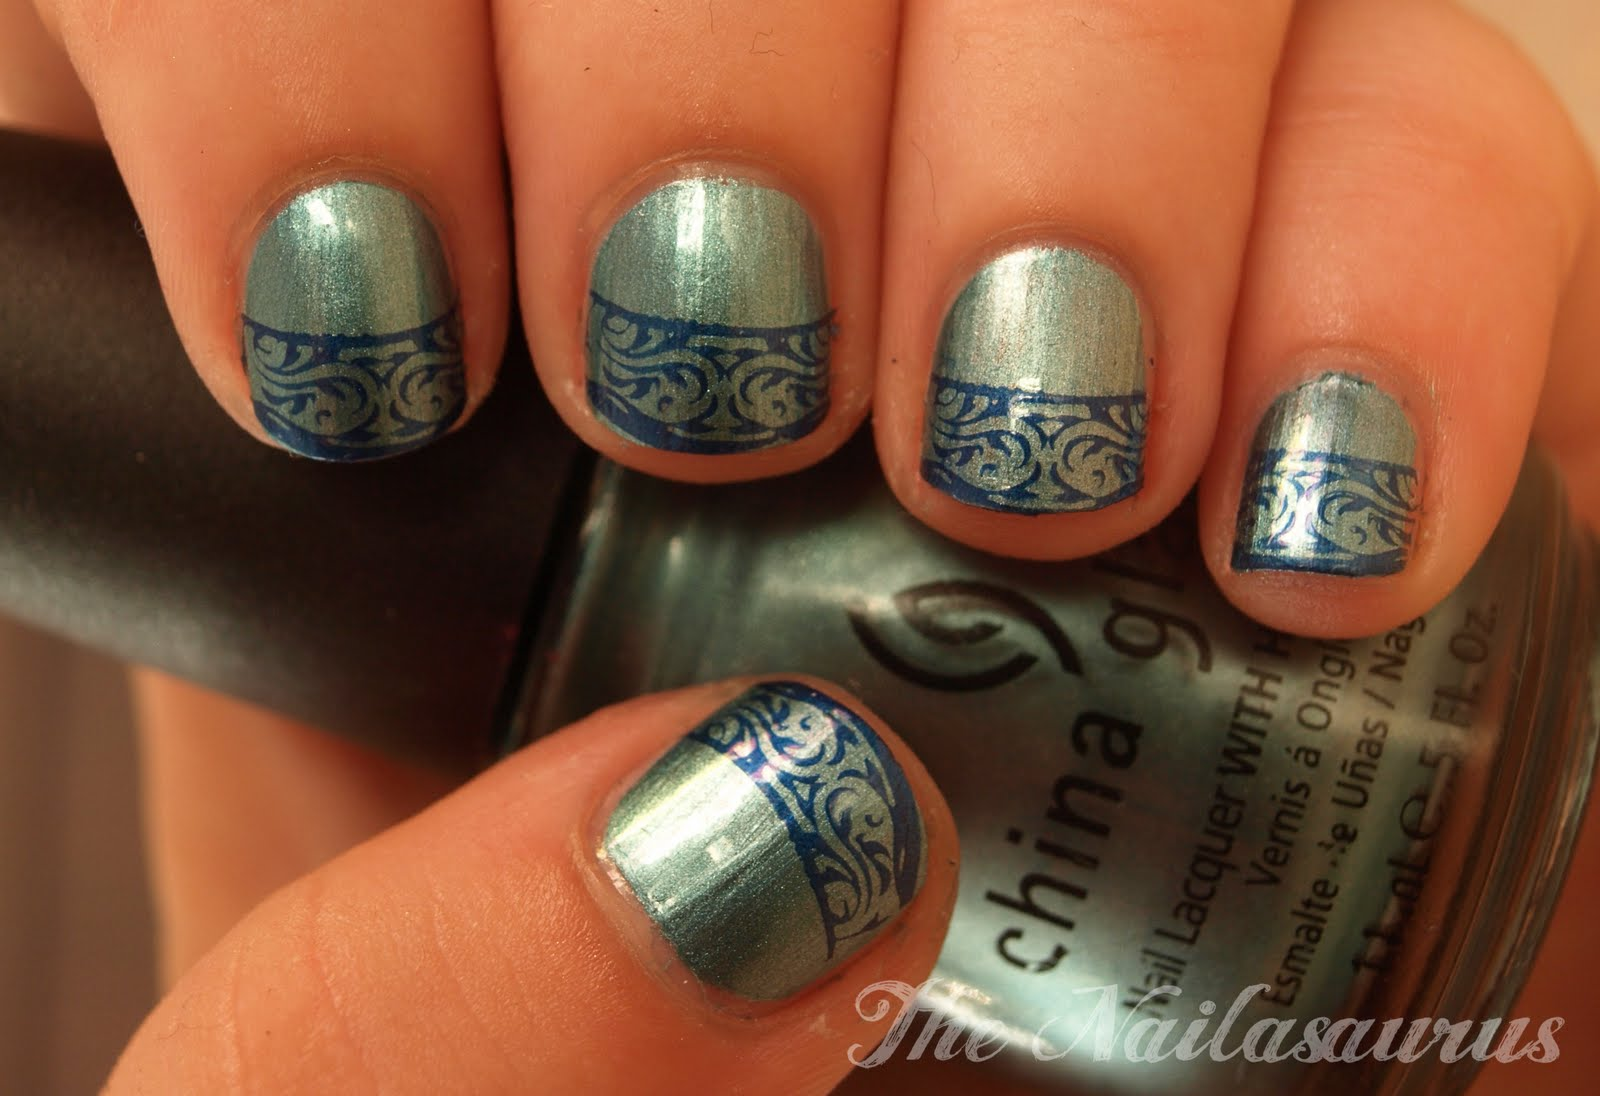 The Nailasaurus Uk Nail Art Blog